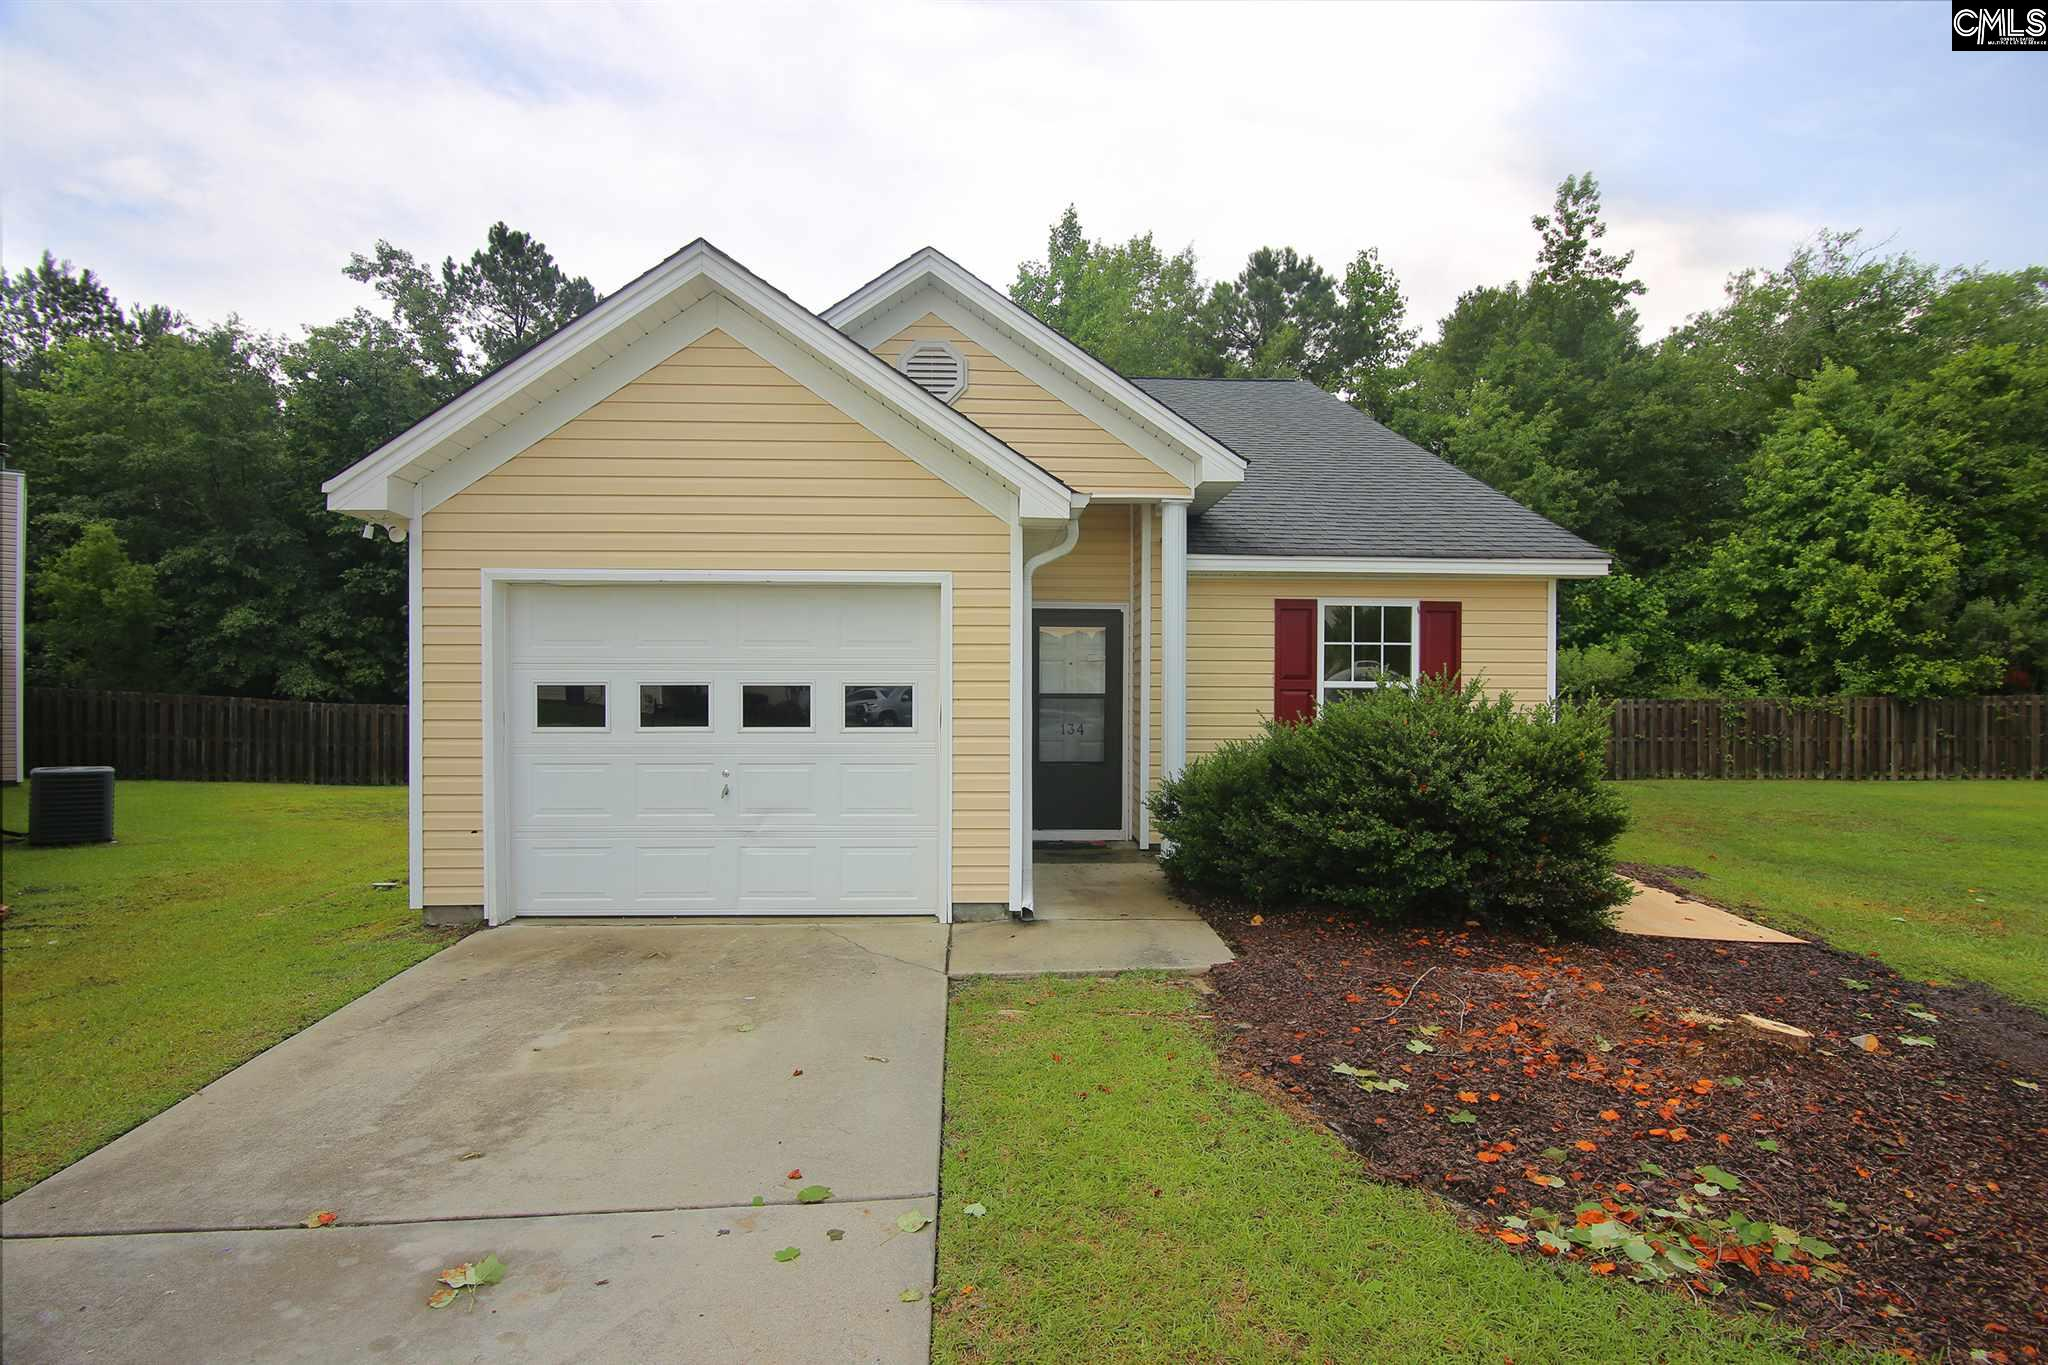 134 W Killian Station Columbia, SC 29229